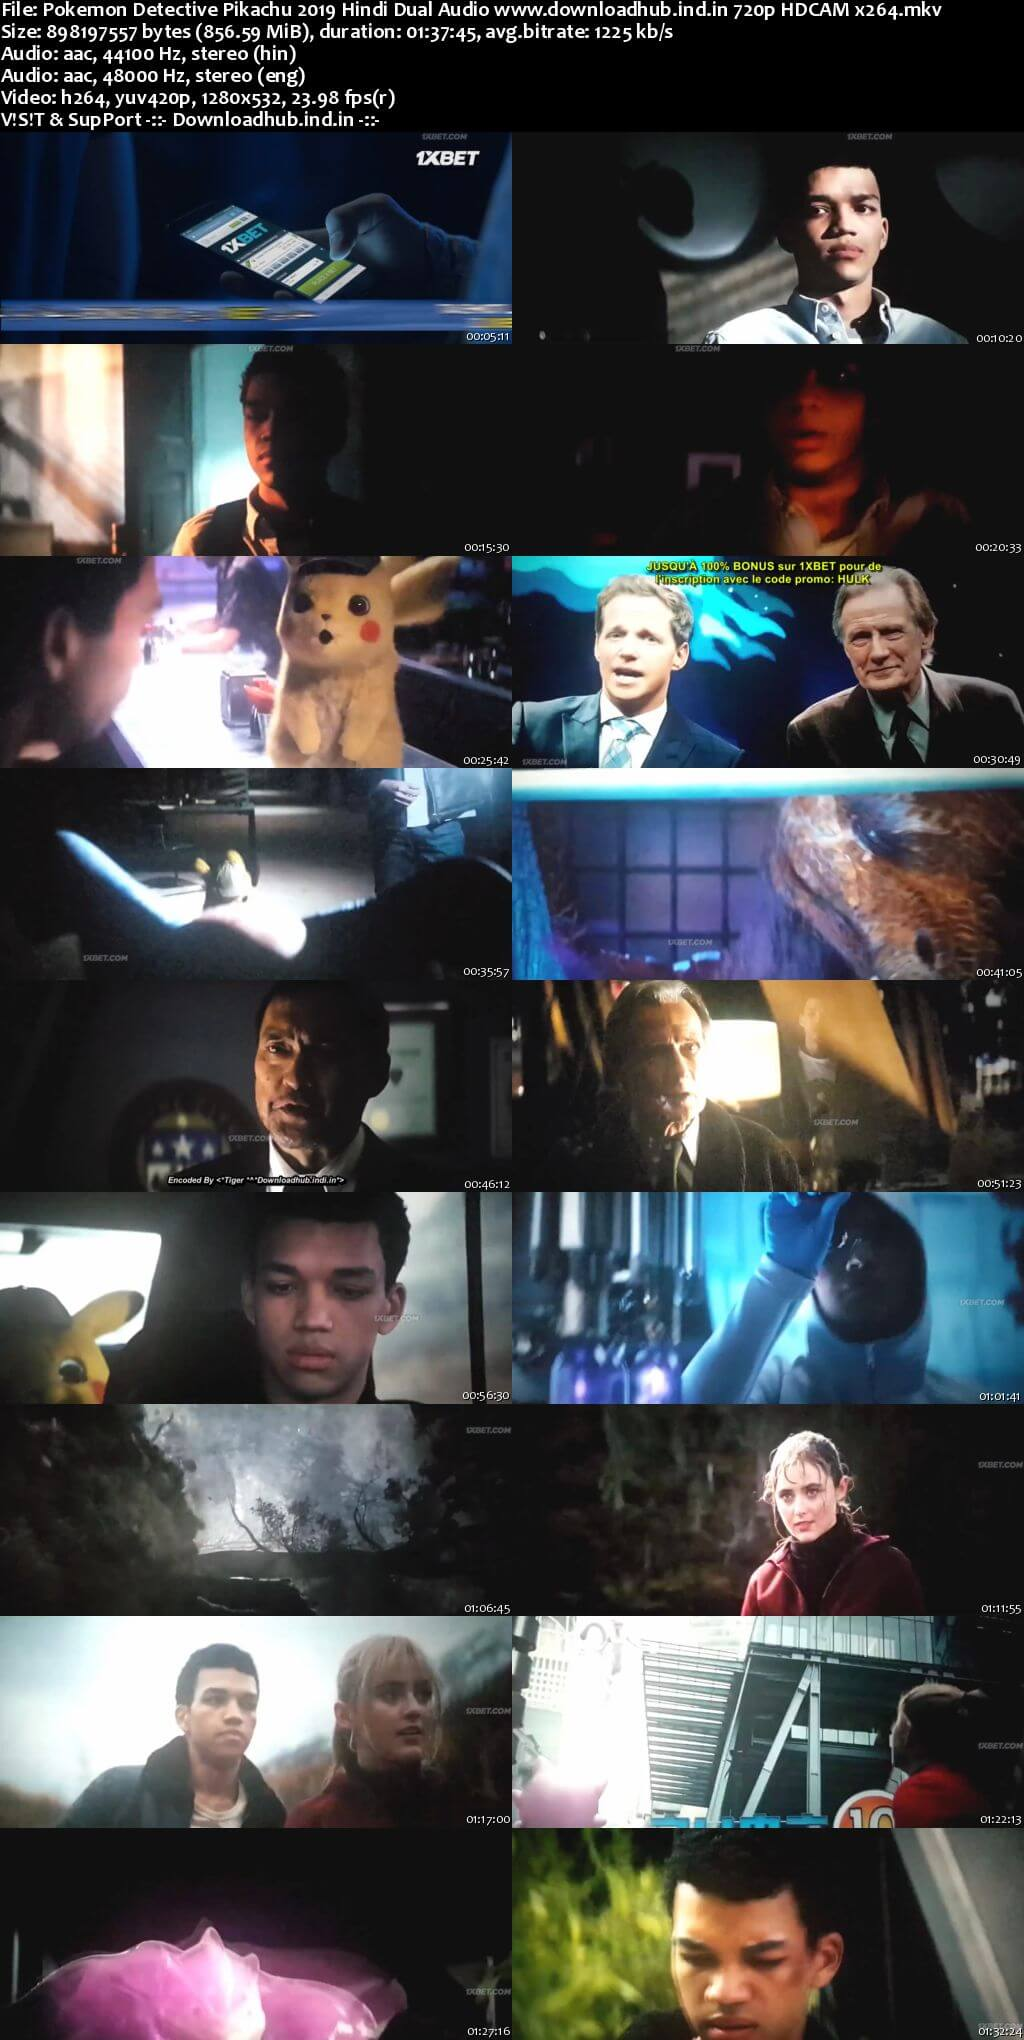 Pokemon Detective Pikachu 2019 Hindi Dual Audio 720p HDCAM x264